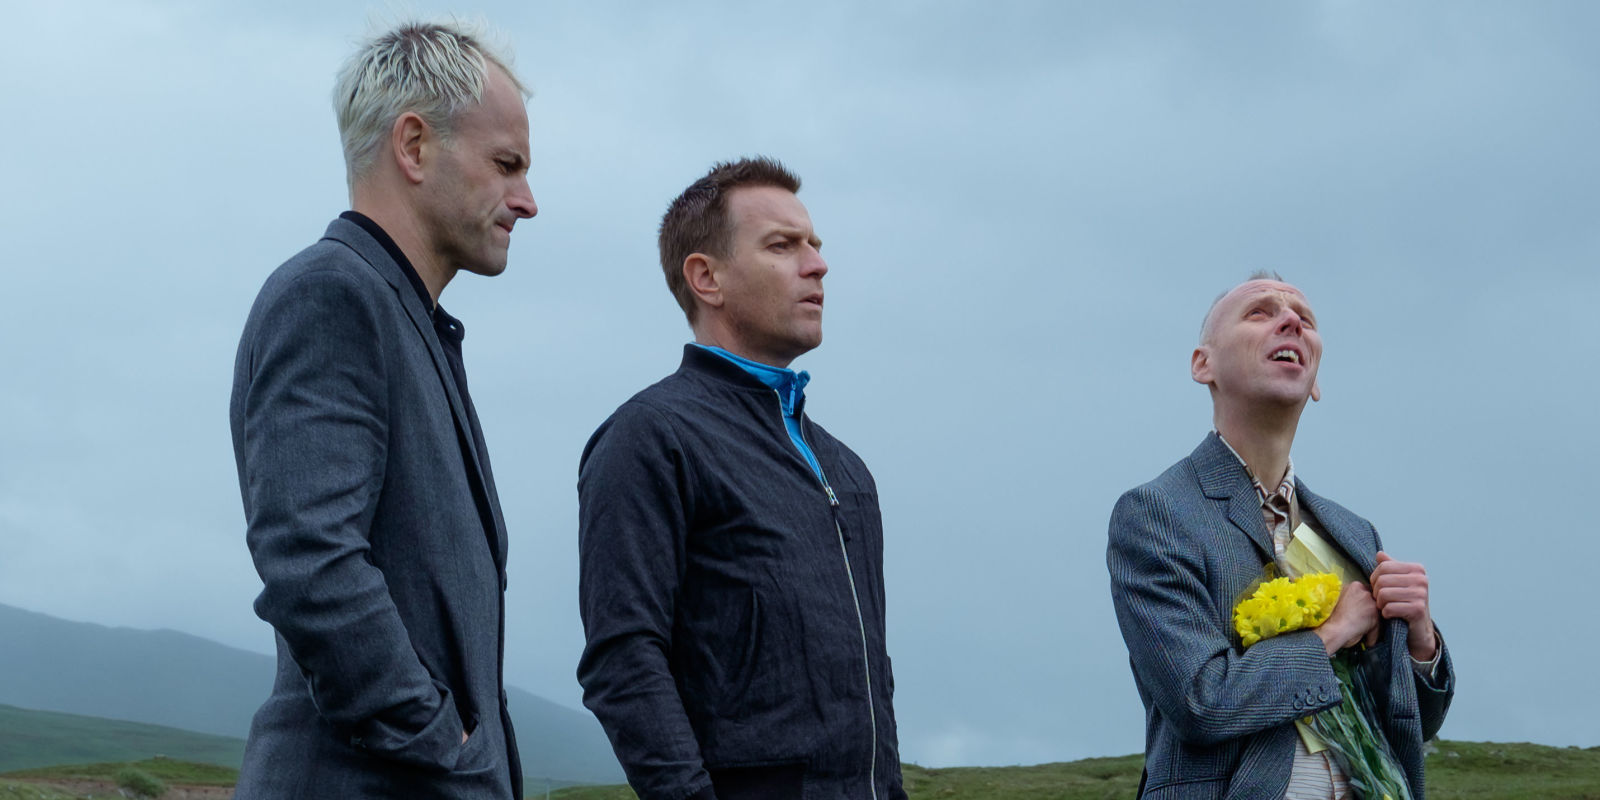 danny boyle talks bringing back trainspotting and why t2 2017 images